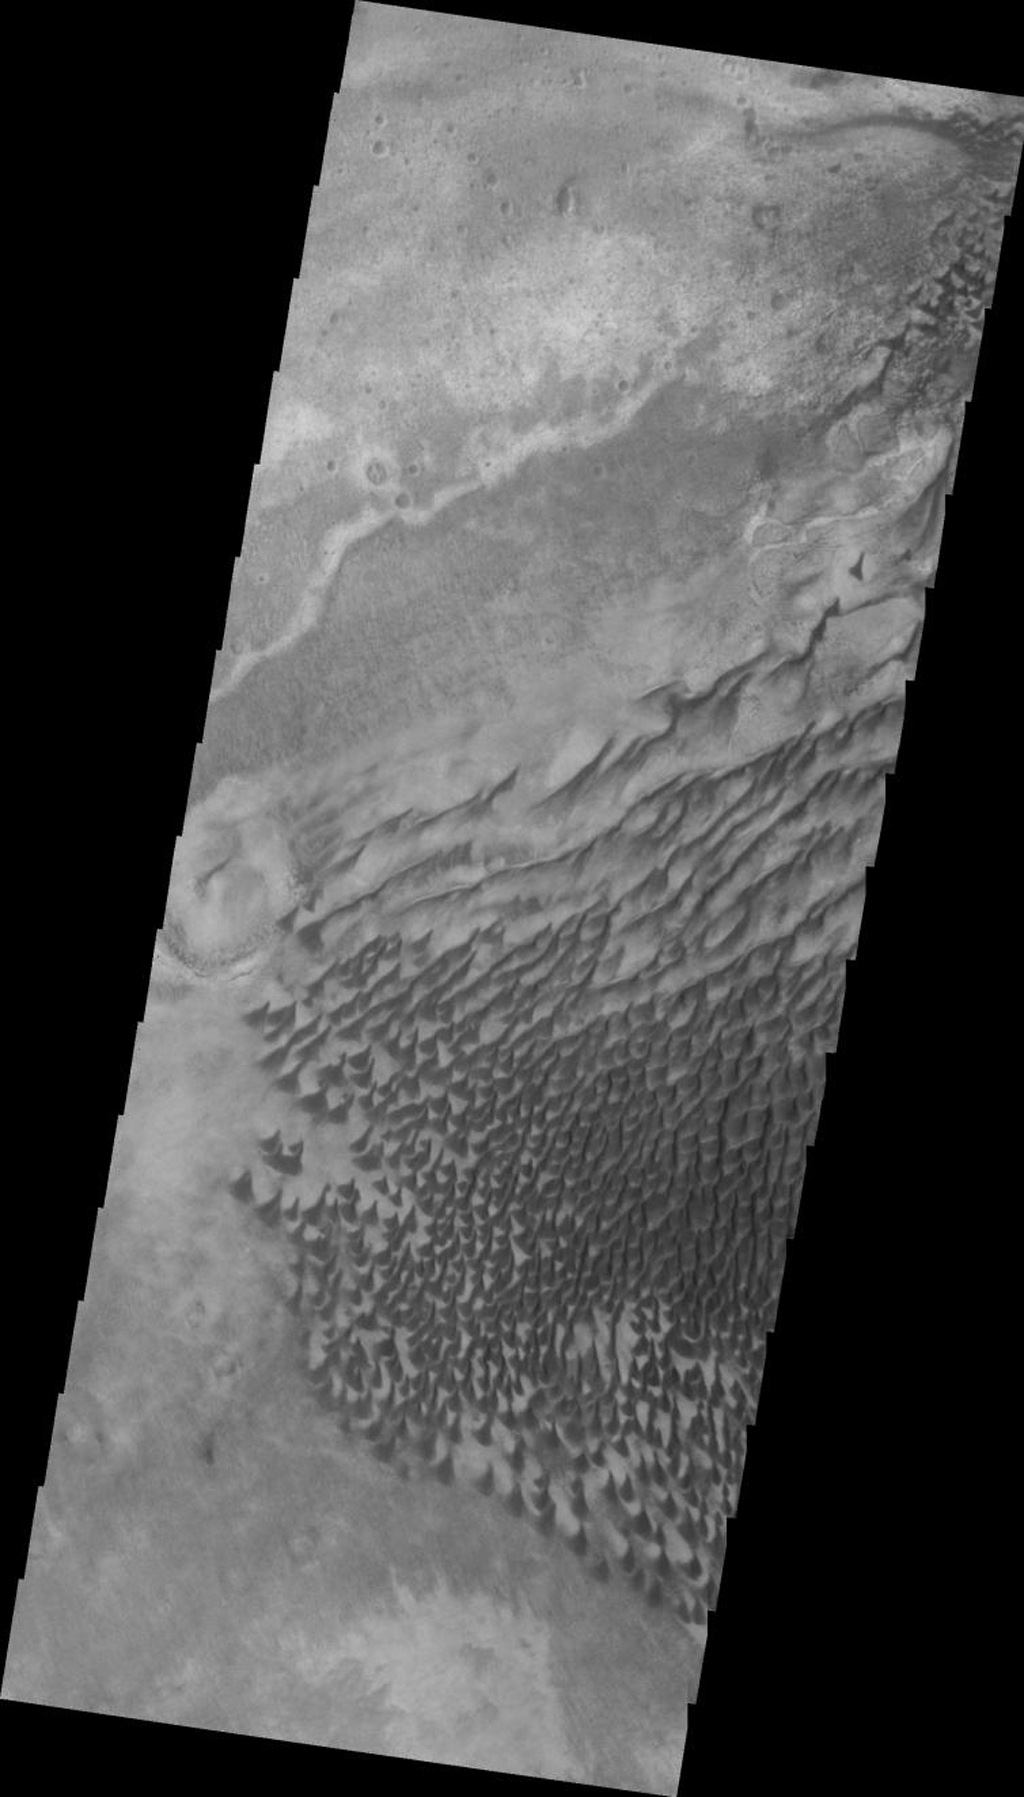 This 2001 Mars Odyssey image shows a portion of the extensive dune field in on the floor of Russell Crater on Mars.